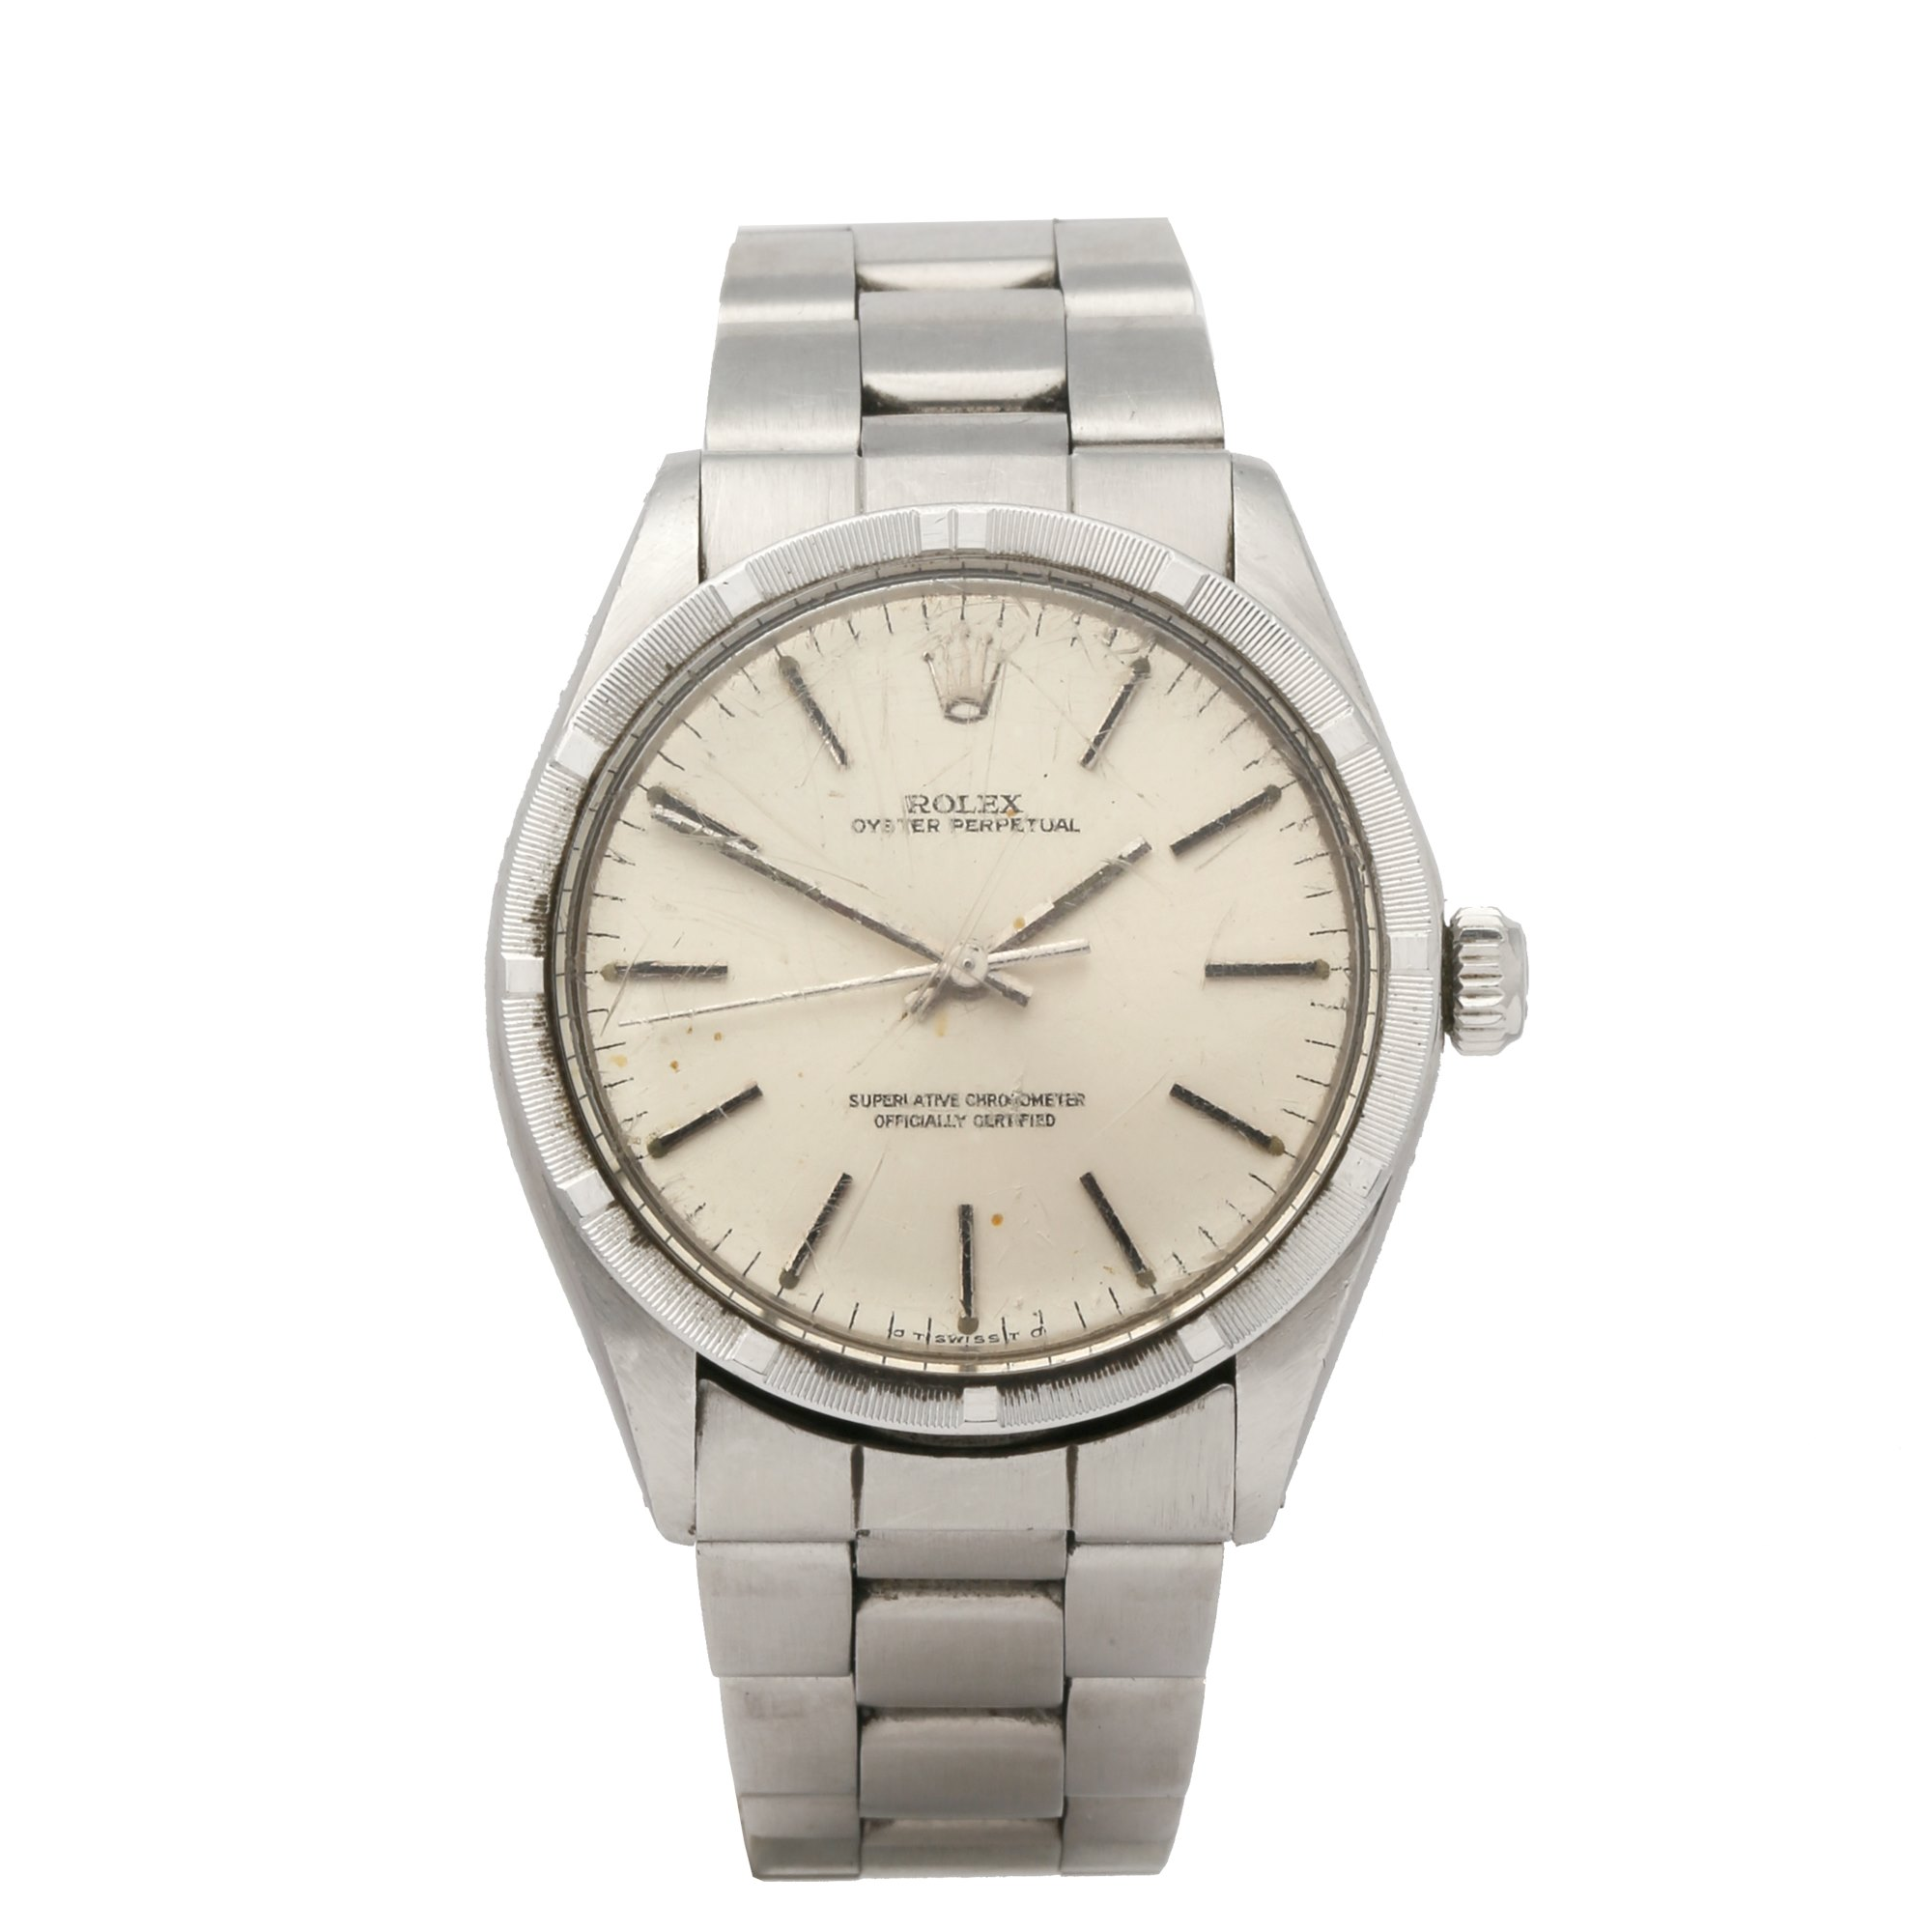 Rolex Oyster Perpetual 34 Stainless Steel 1007